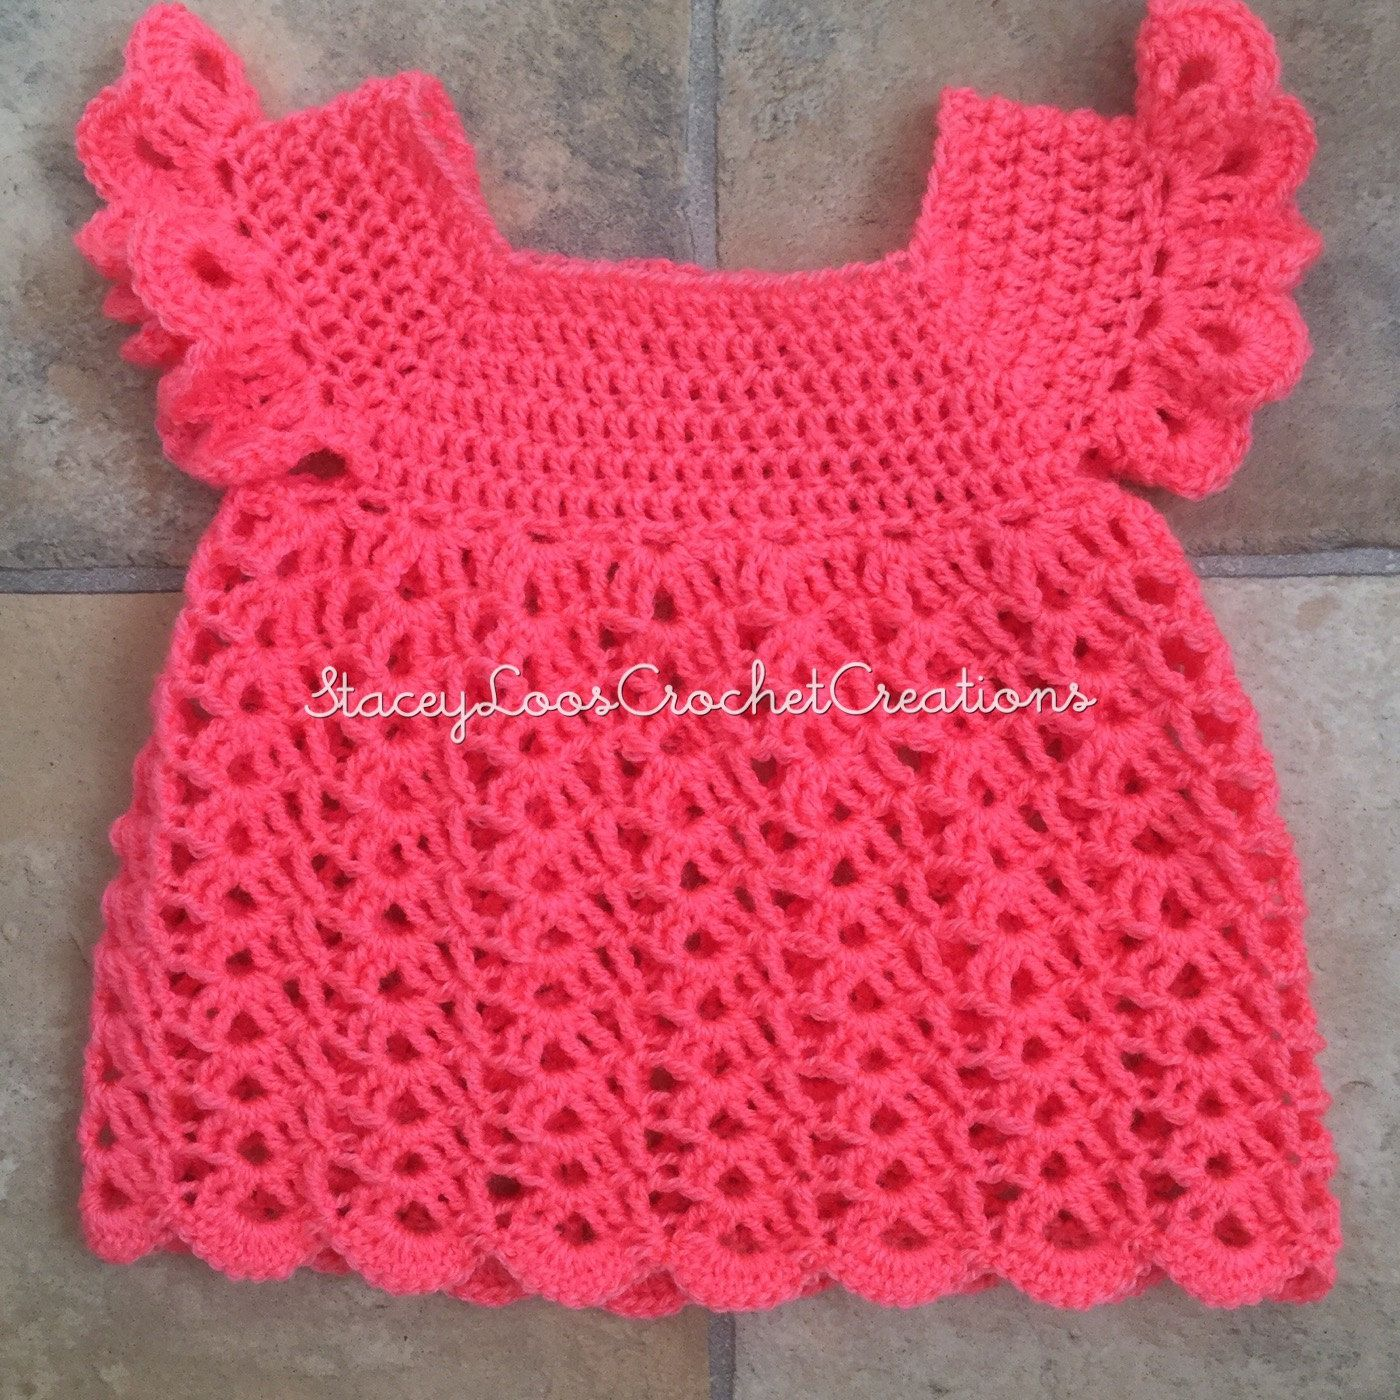 Crochet Dress, Toddler, Beautiful Dress, Smock Top, Overtop, Over Top, Handmade by LoosCrochetCreations on Etsy